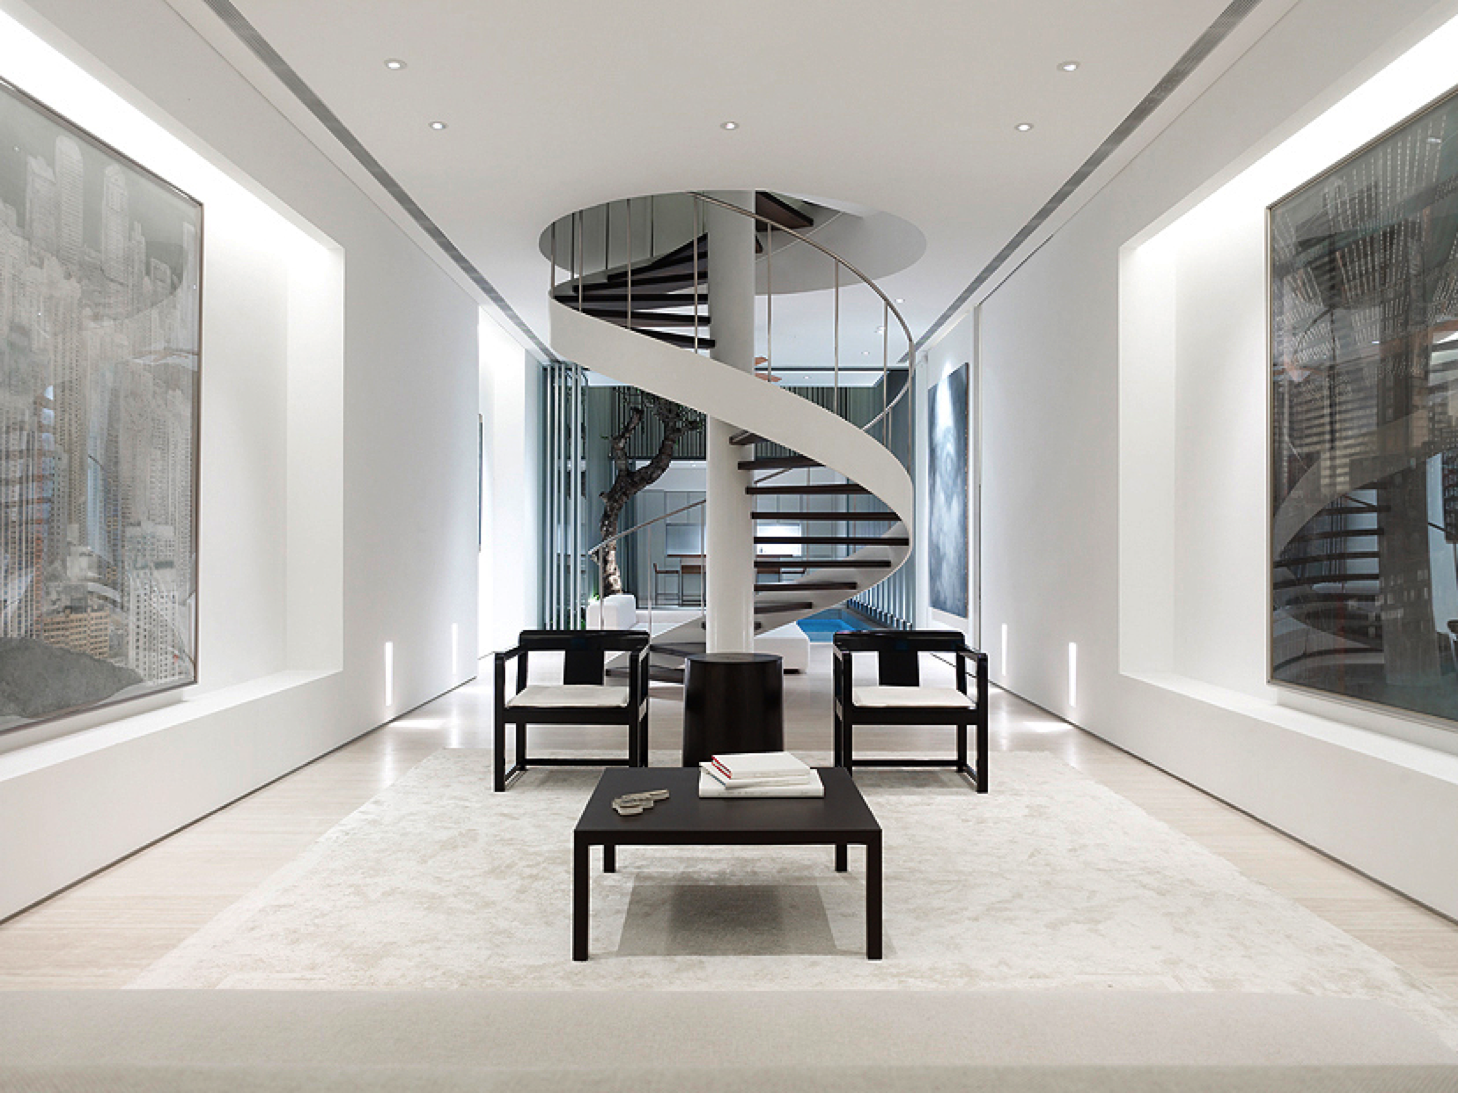 Ming Chairs By Casa Milano At 55 Blair Road Singapore By Ong Ong Pte Ltd Staircase Design Stairs Design Minimalist House Design